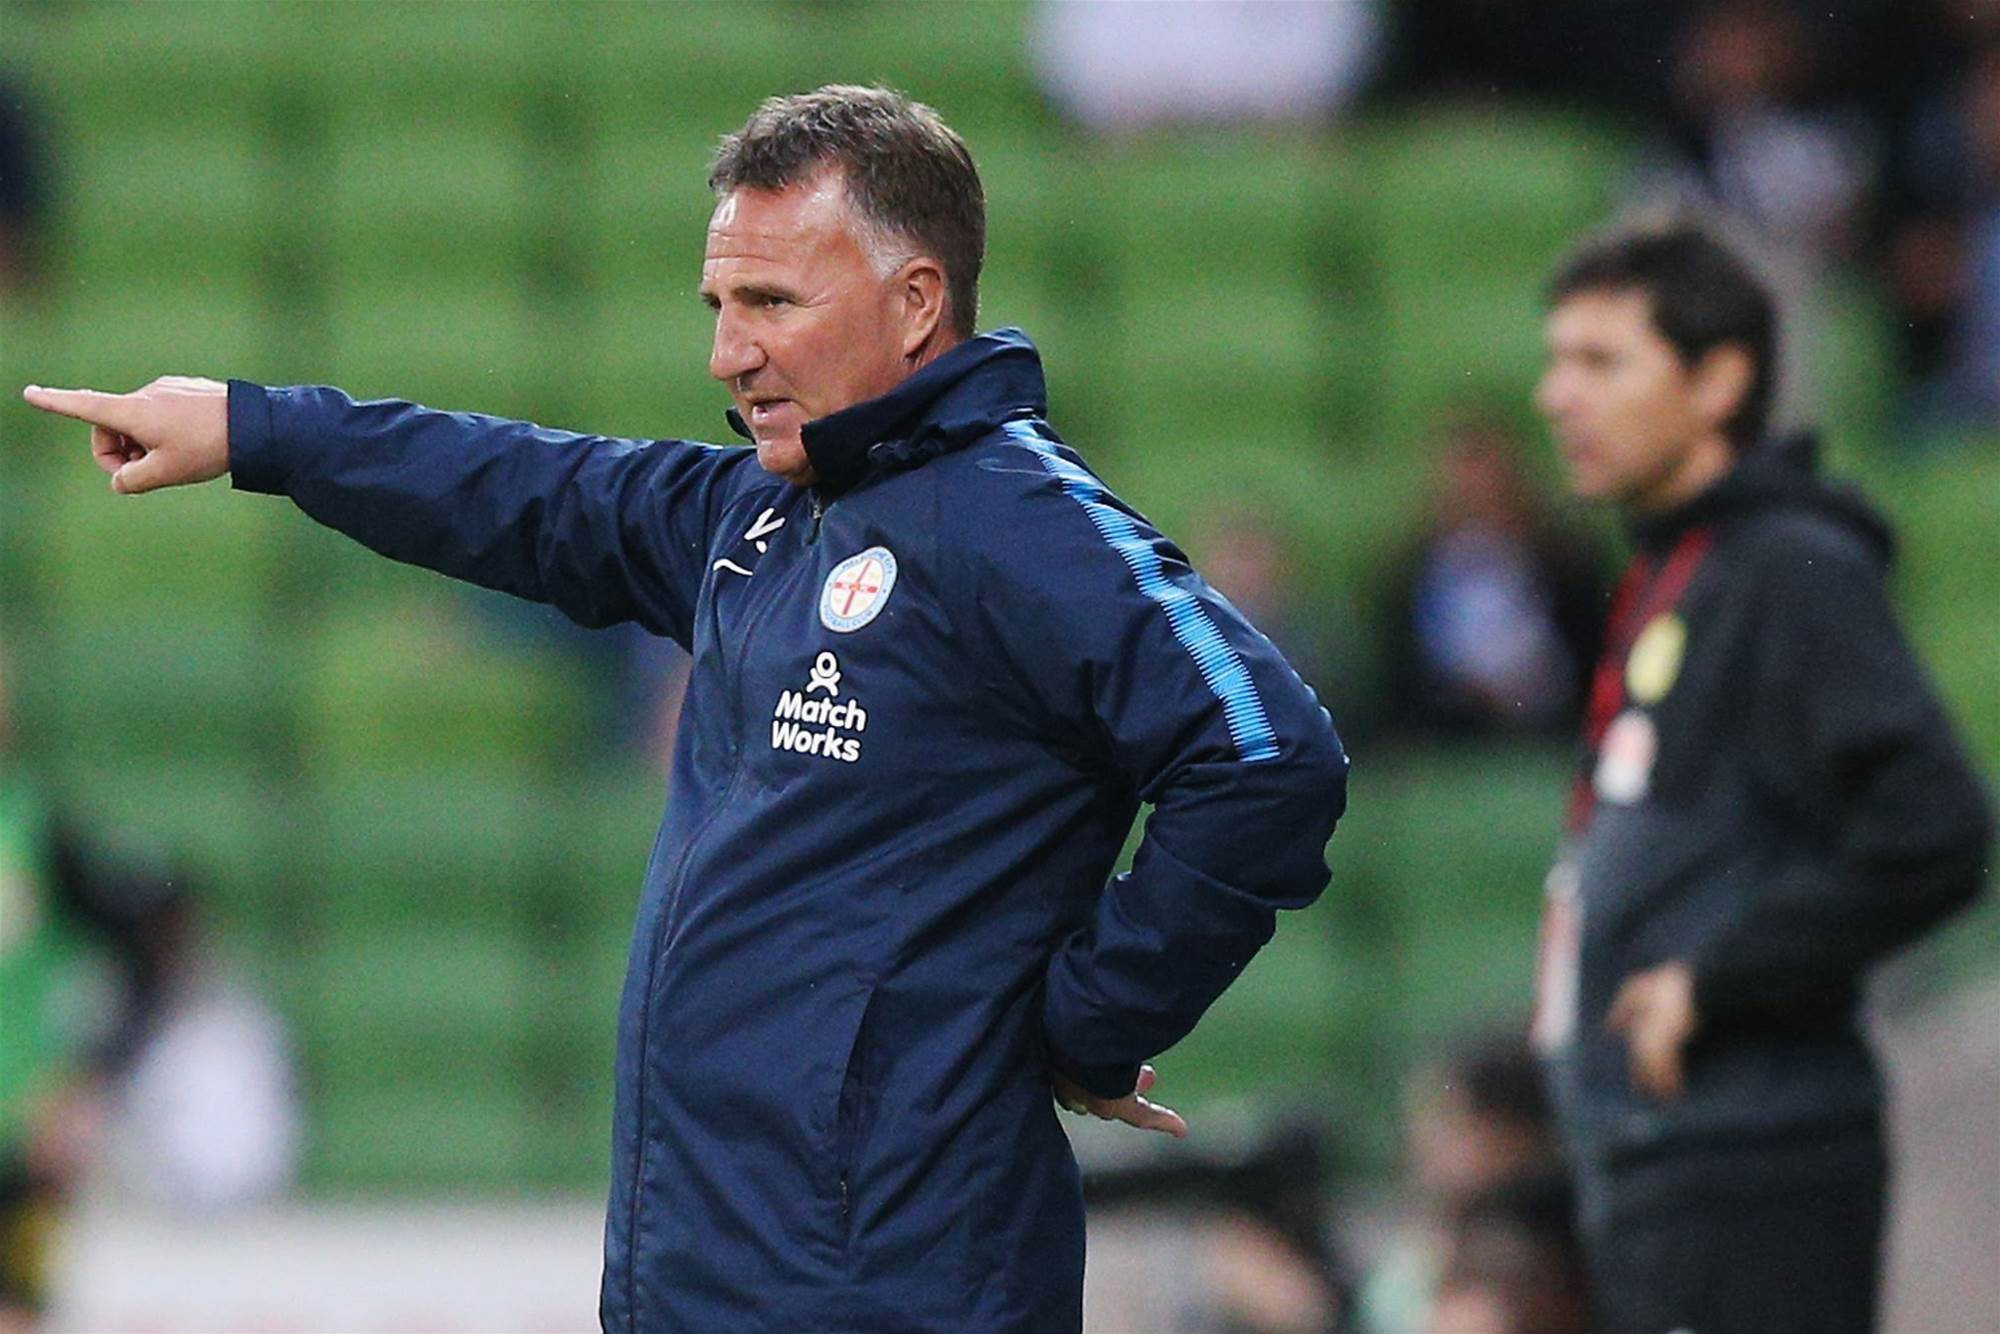 City top and undefeated, but Joyce wants more